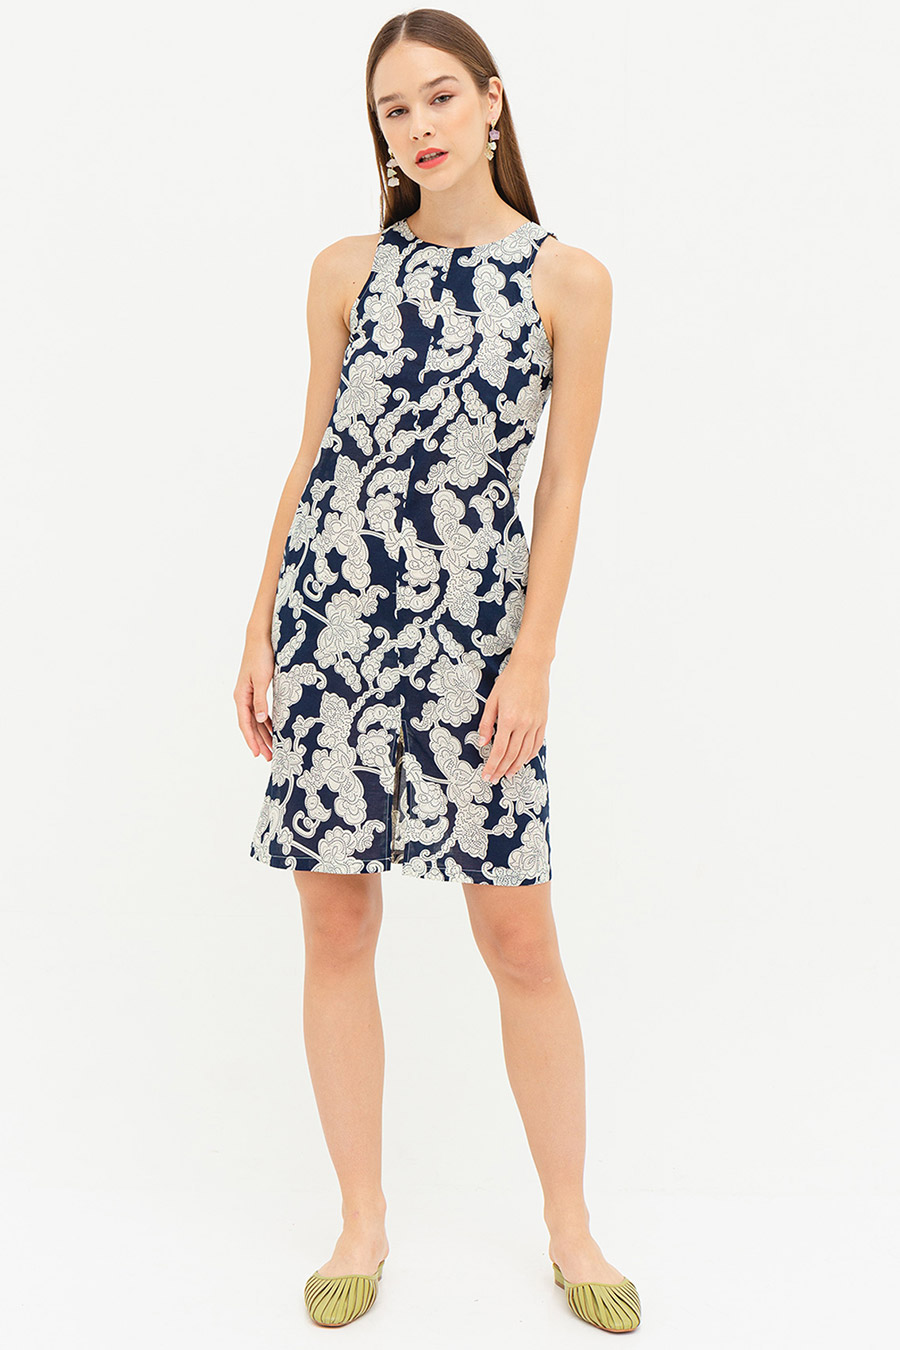 *SALE* CHLOE DRESS - STRAITS FLEUR [BY MODPARADE]